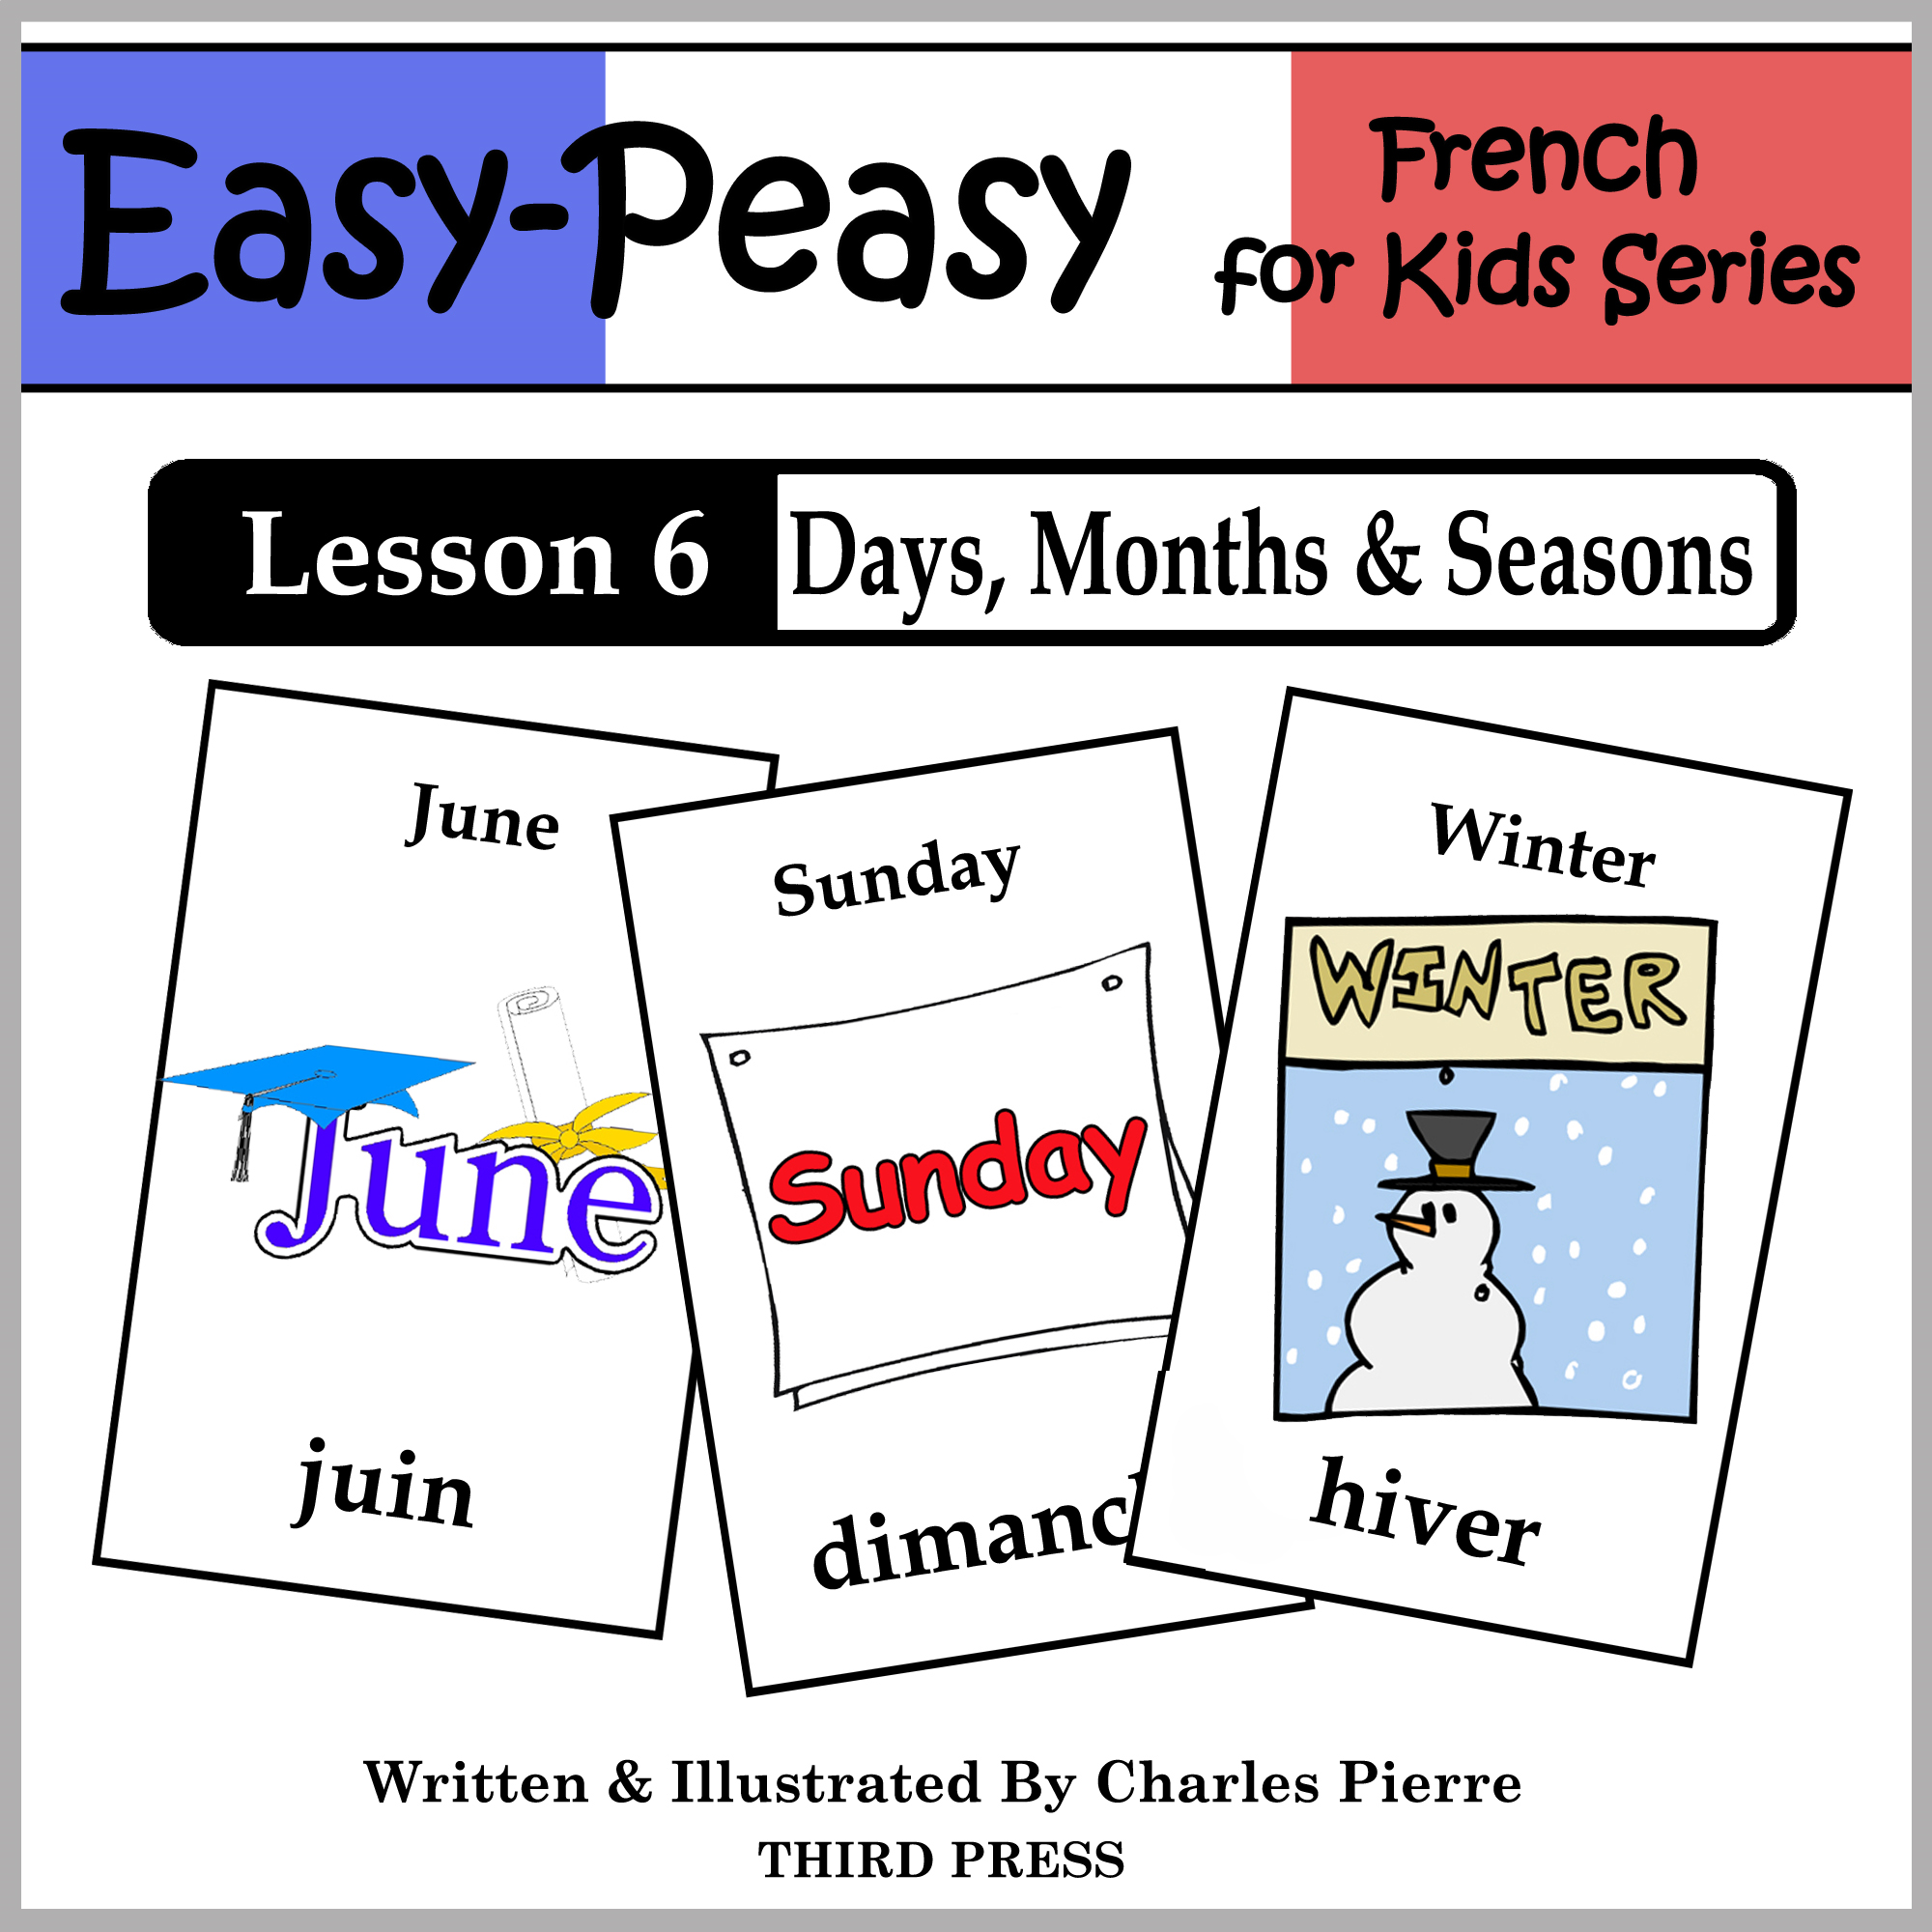 French Lesson 6: Months, Days & Seasons